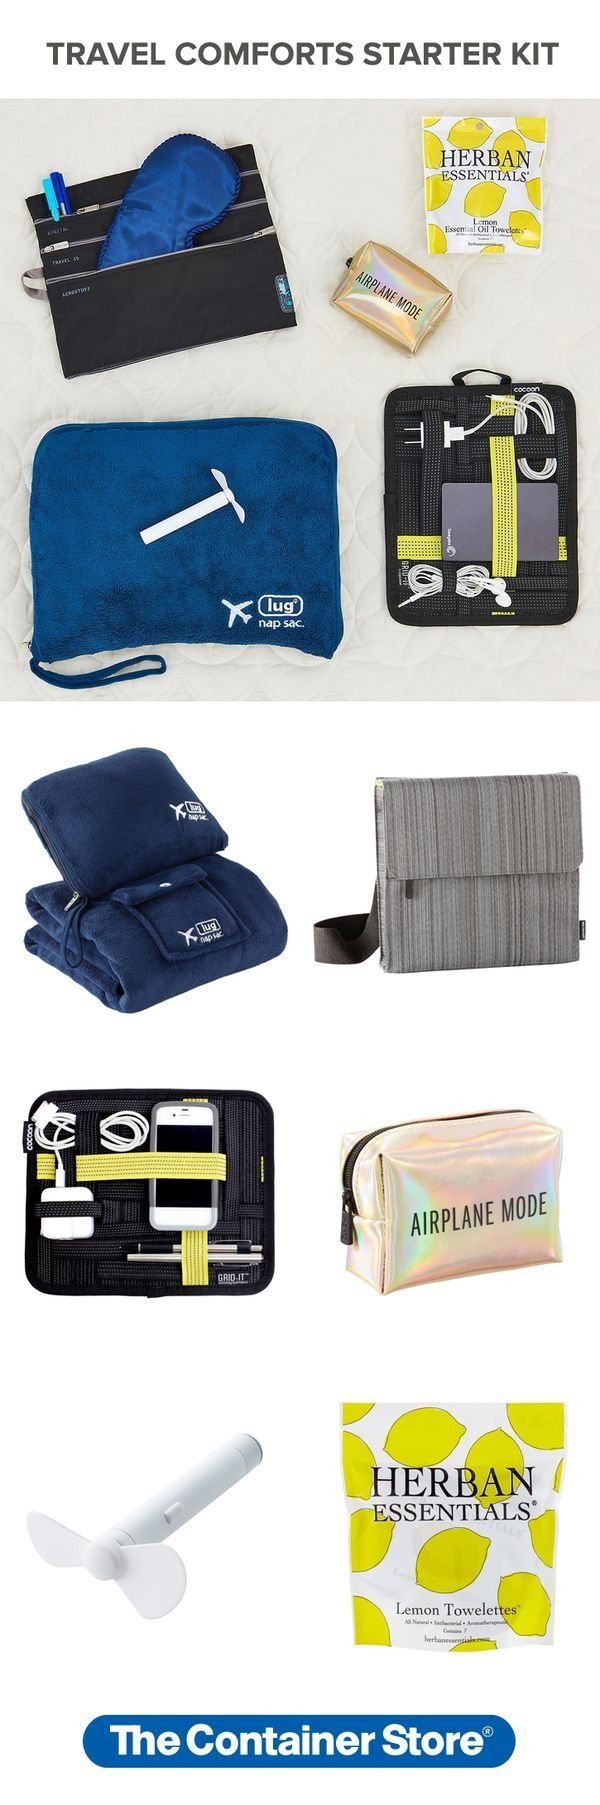 For this kit, we've pulled together some essentials to keep you organized and comfortable on your flight.   Our Travel Comforts Starter Kit includes: (1) Nap Sac Blanket & Pillow, (1) TAB Plus Messenger Bag & Seatback Organizer, (1) Travel GRID-IT! Organizer, (1) Airplane Mode Travel Kit, (1) Super Mini Fan, and (1) Package of 7 Lemon Towelette Wipes.